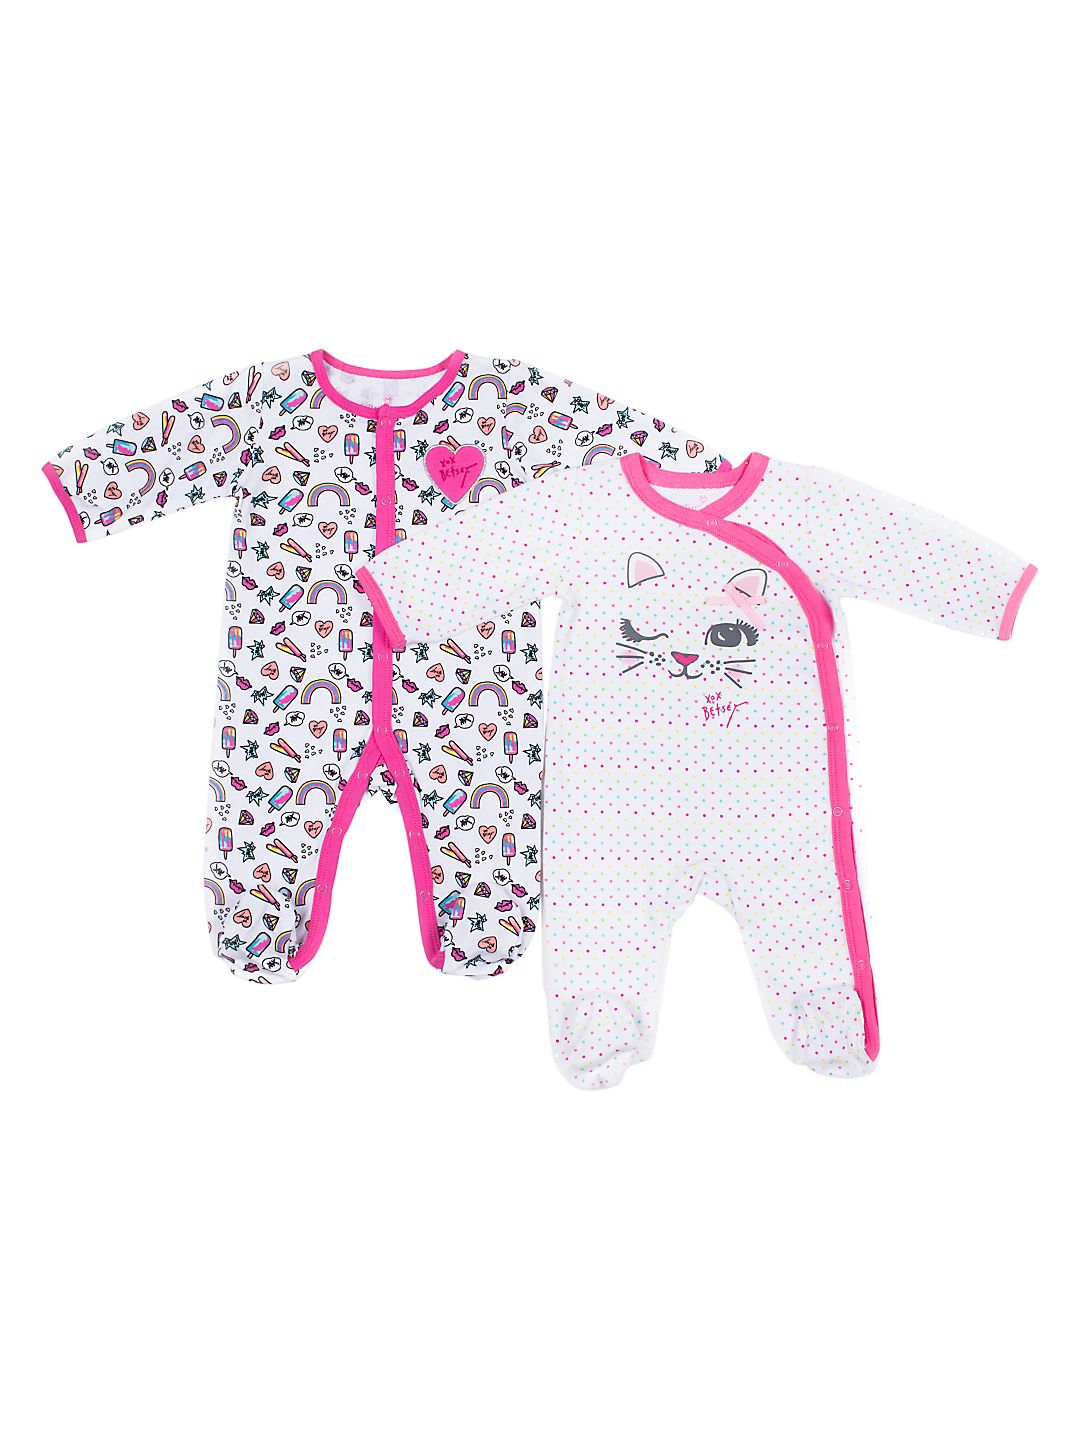 Baby Girl's 2-Piece Kitty Footie Set